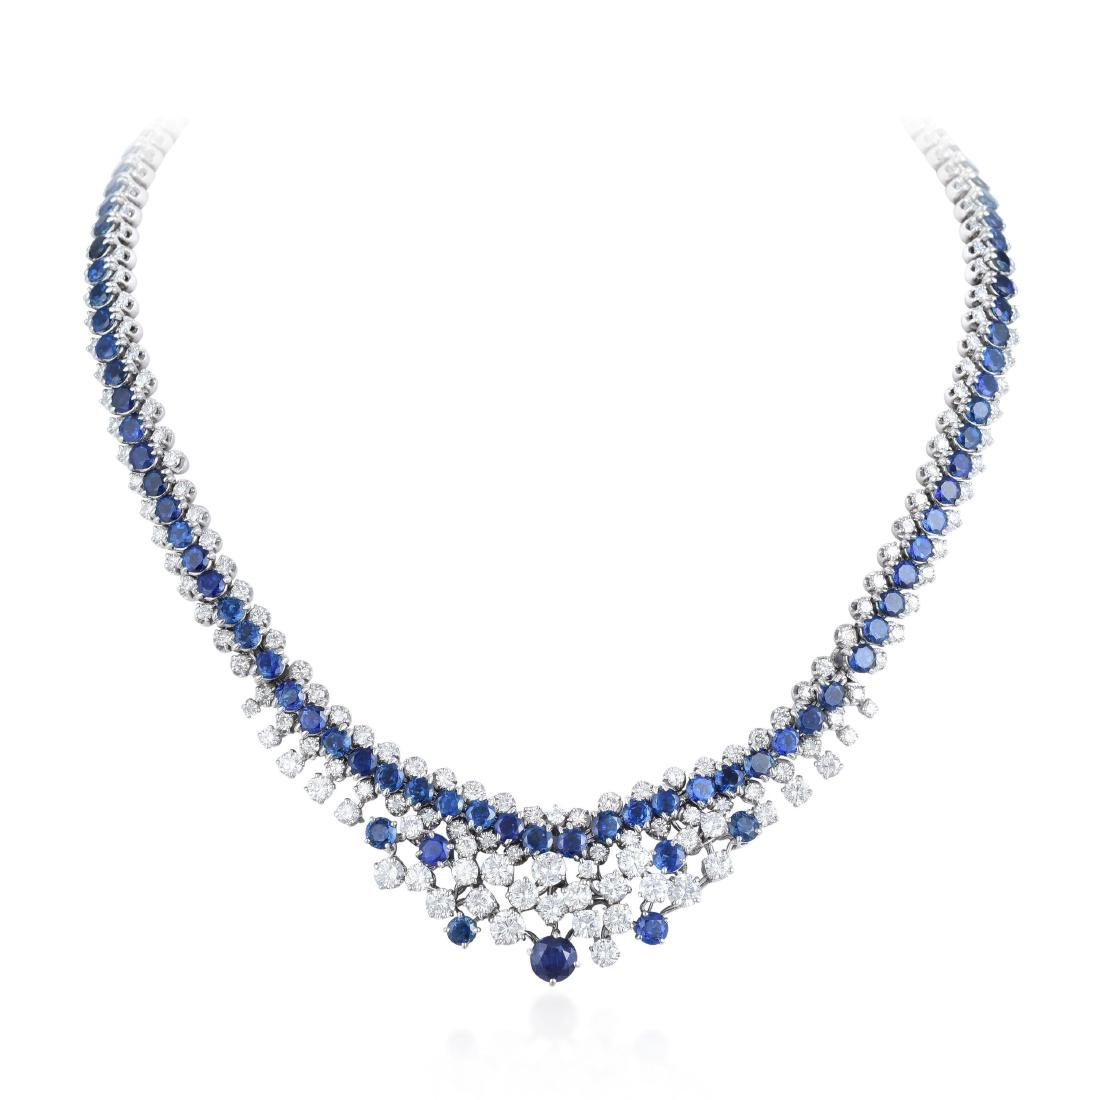 A Sapphire and Diamond Necklace and Bracelet Set - 2